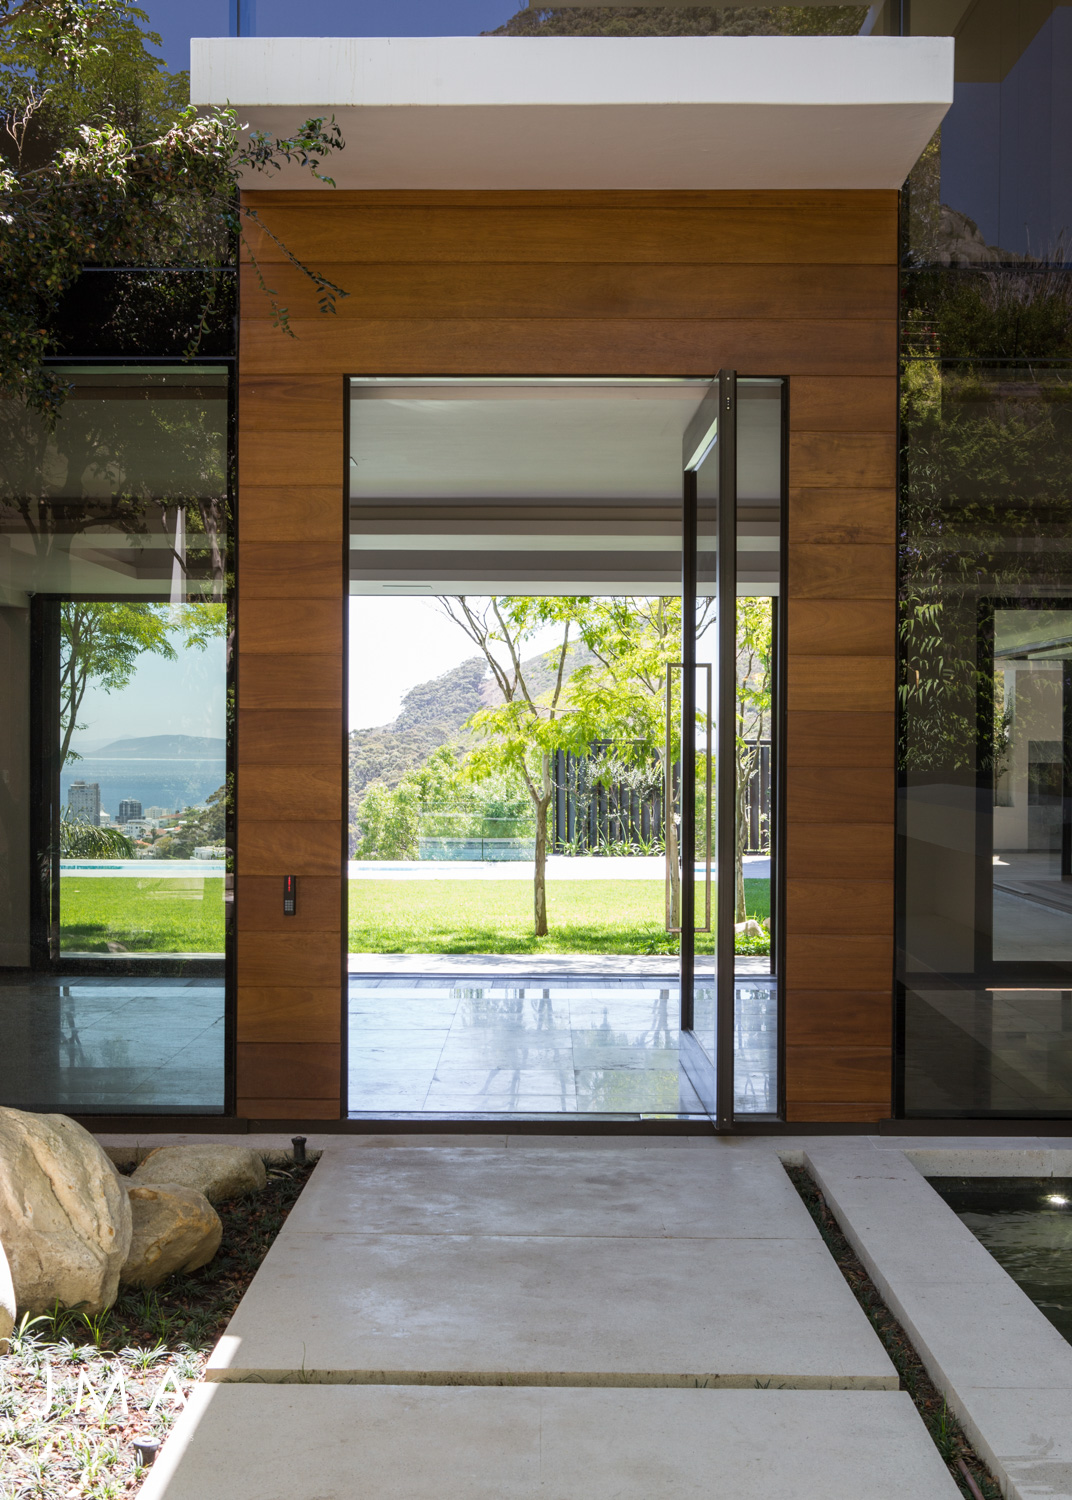 Avenue Fresnaye Villa Entrance Courtyard architecture - Interior Architectural design by Jenny Mills Architects